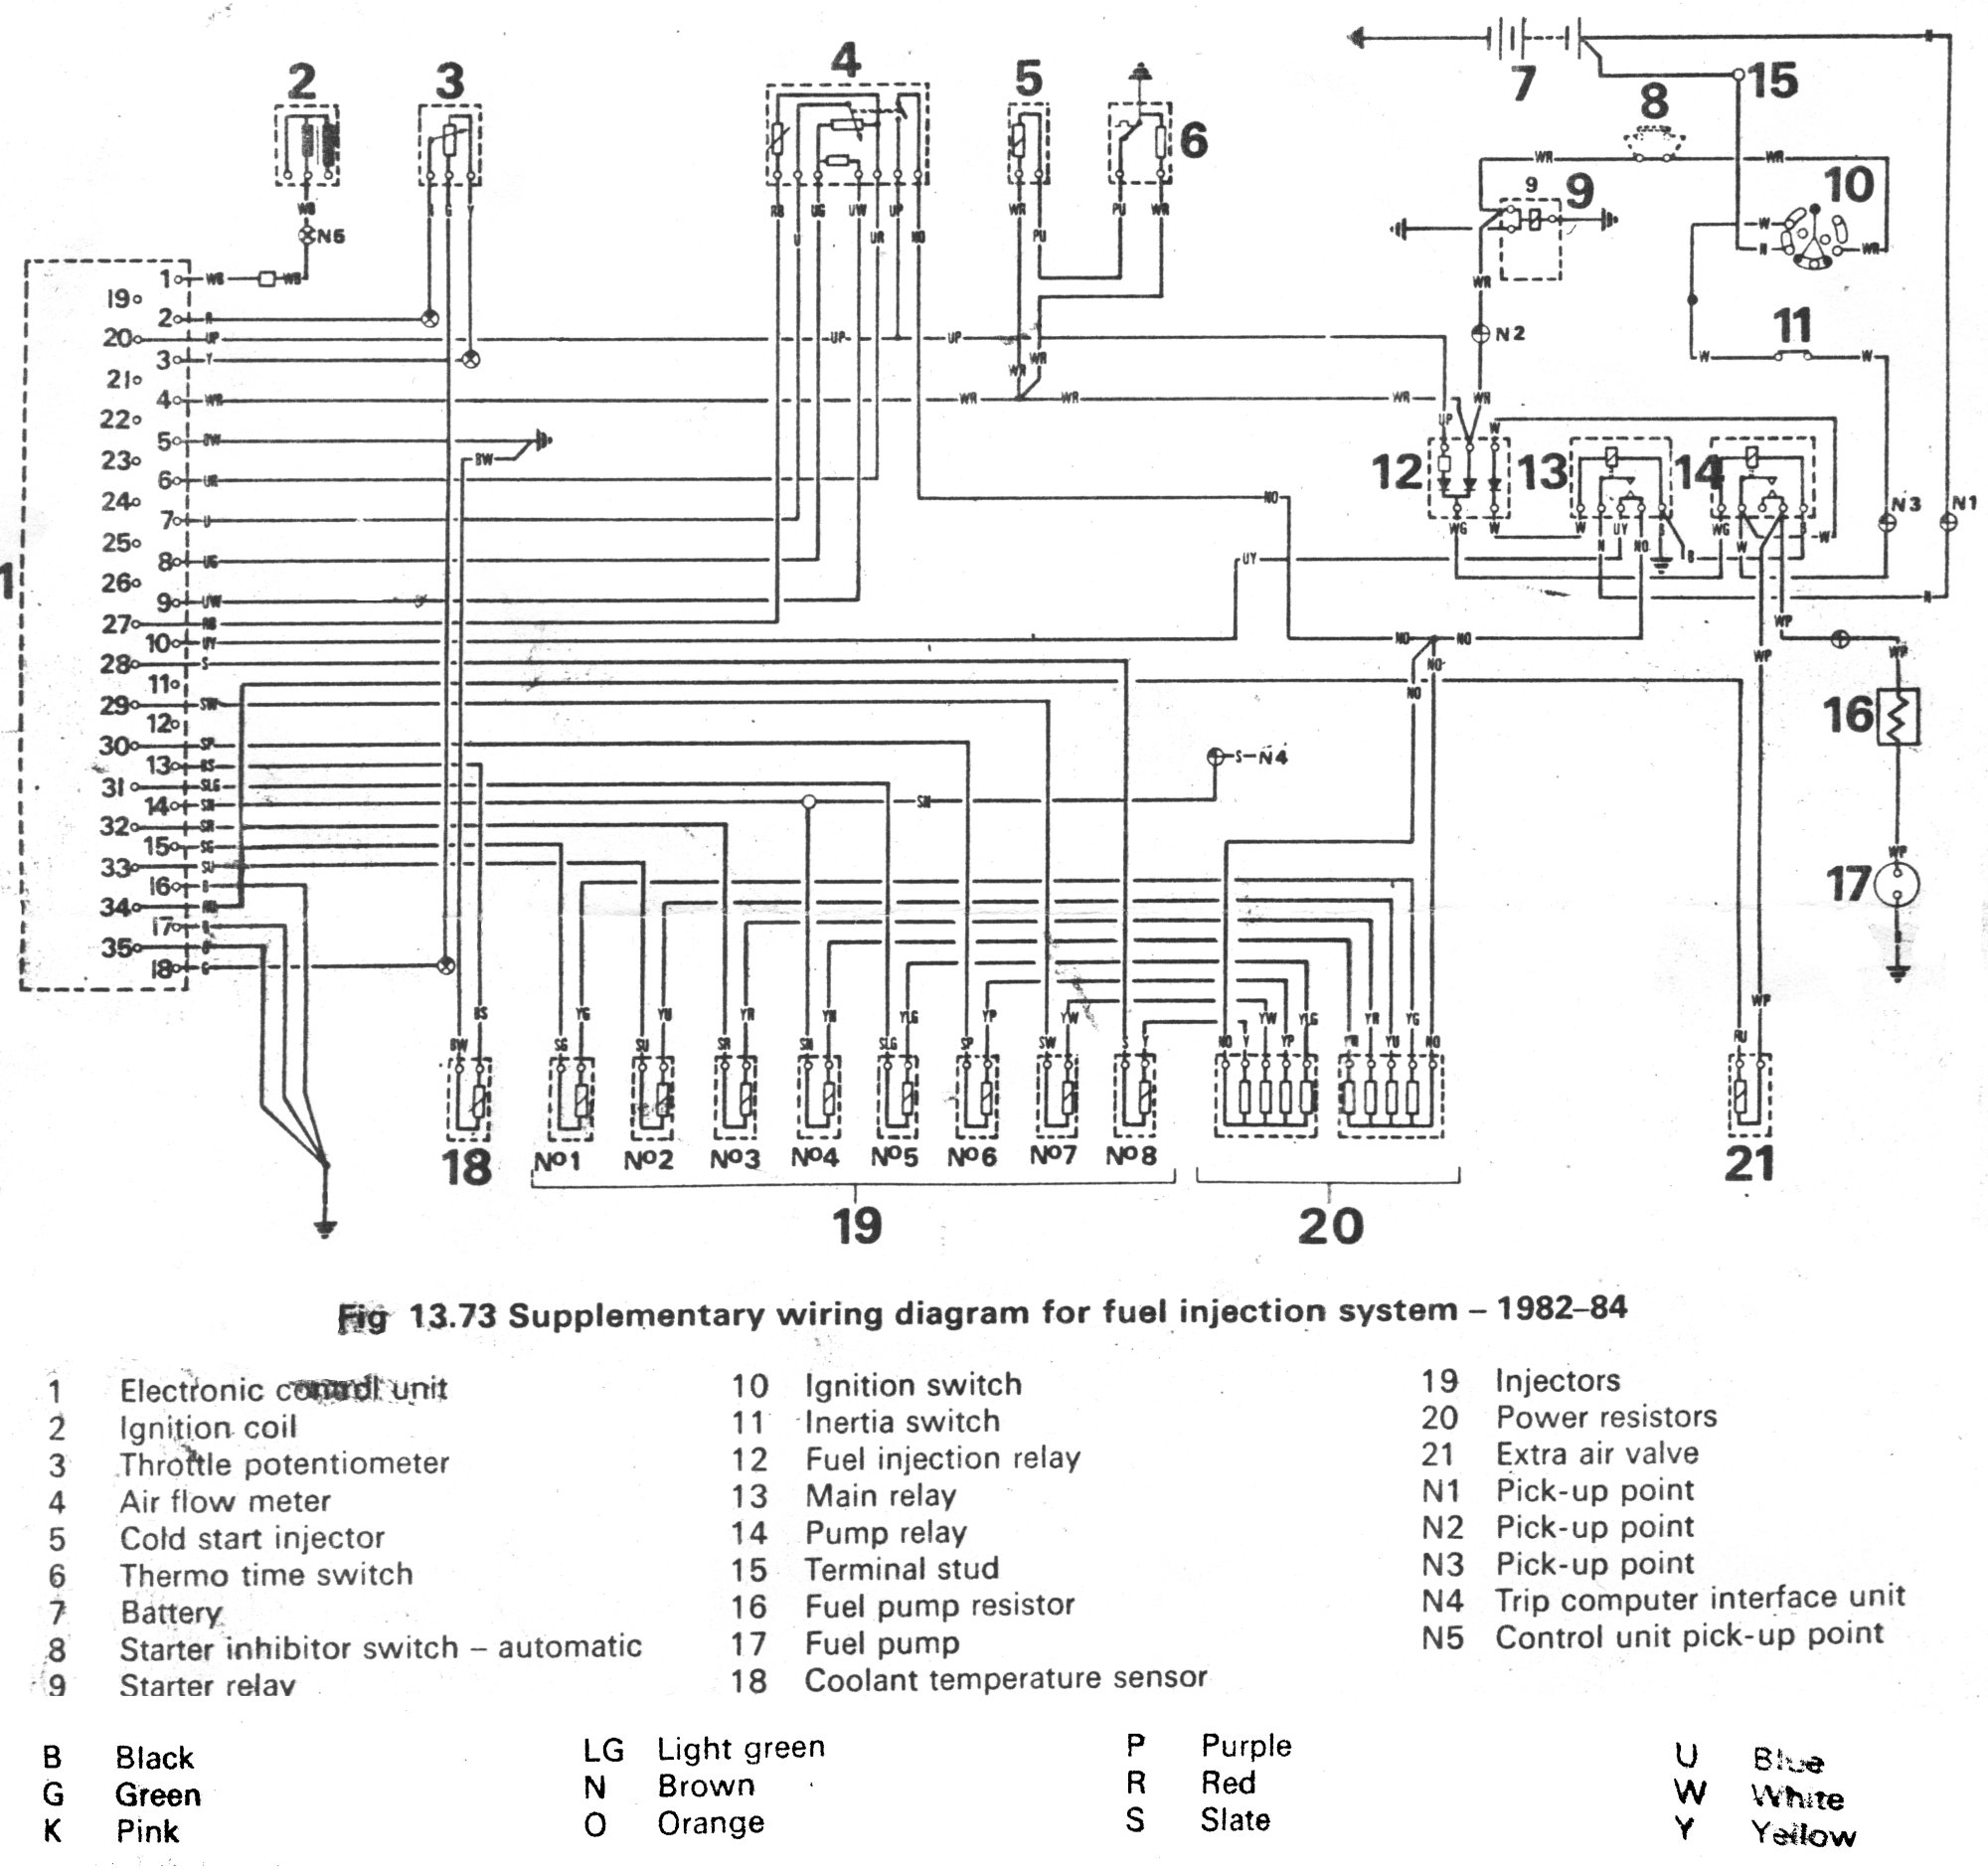 wiring diagram wanted  - range rover forum - lr4x4